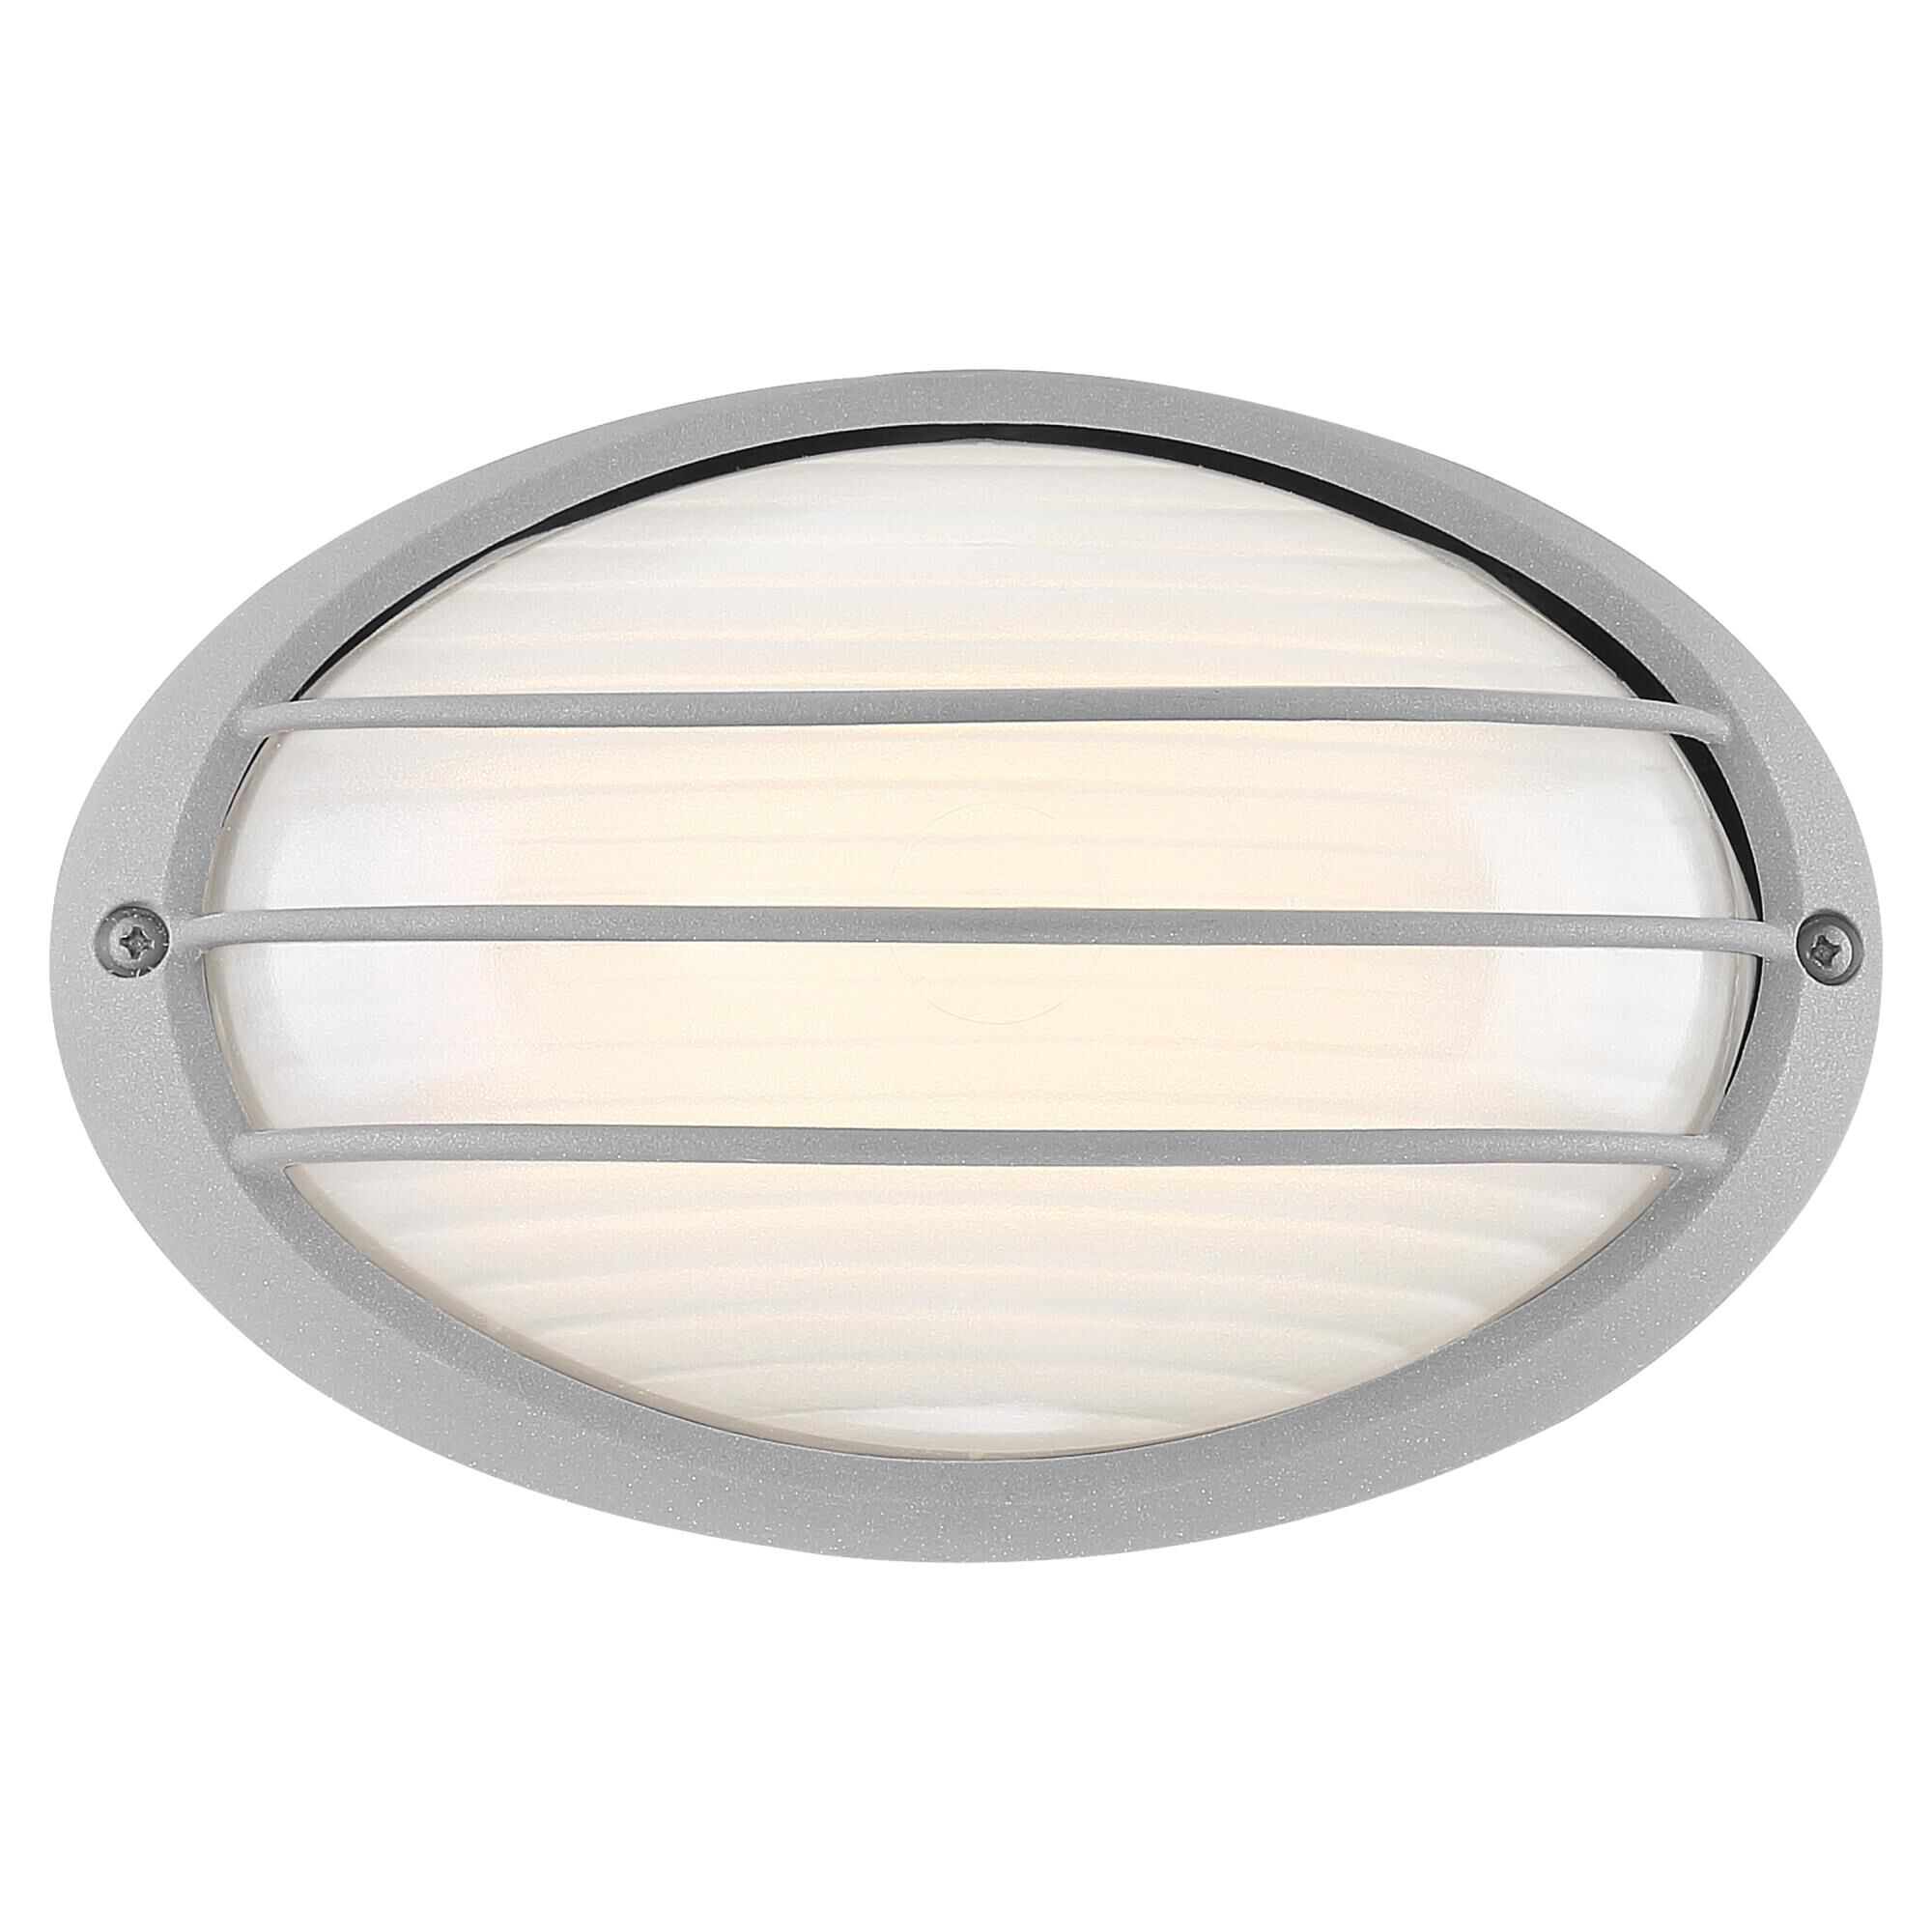 Access Lighting Cabo 5 Inch Tall LED Outdoor Wall Light Cabo 20280LEDDMG WHOPL Nautical